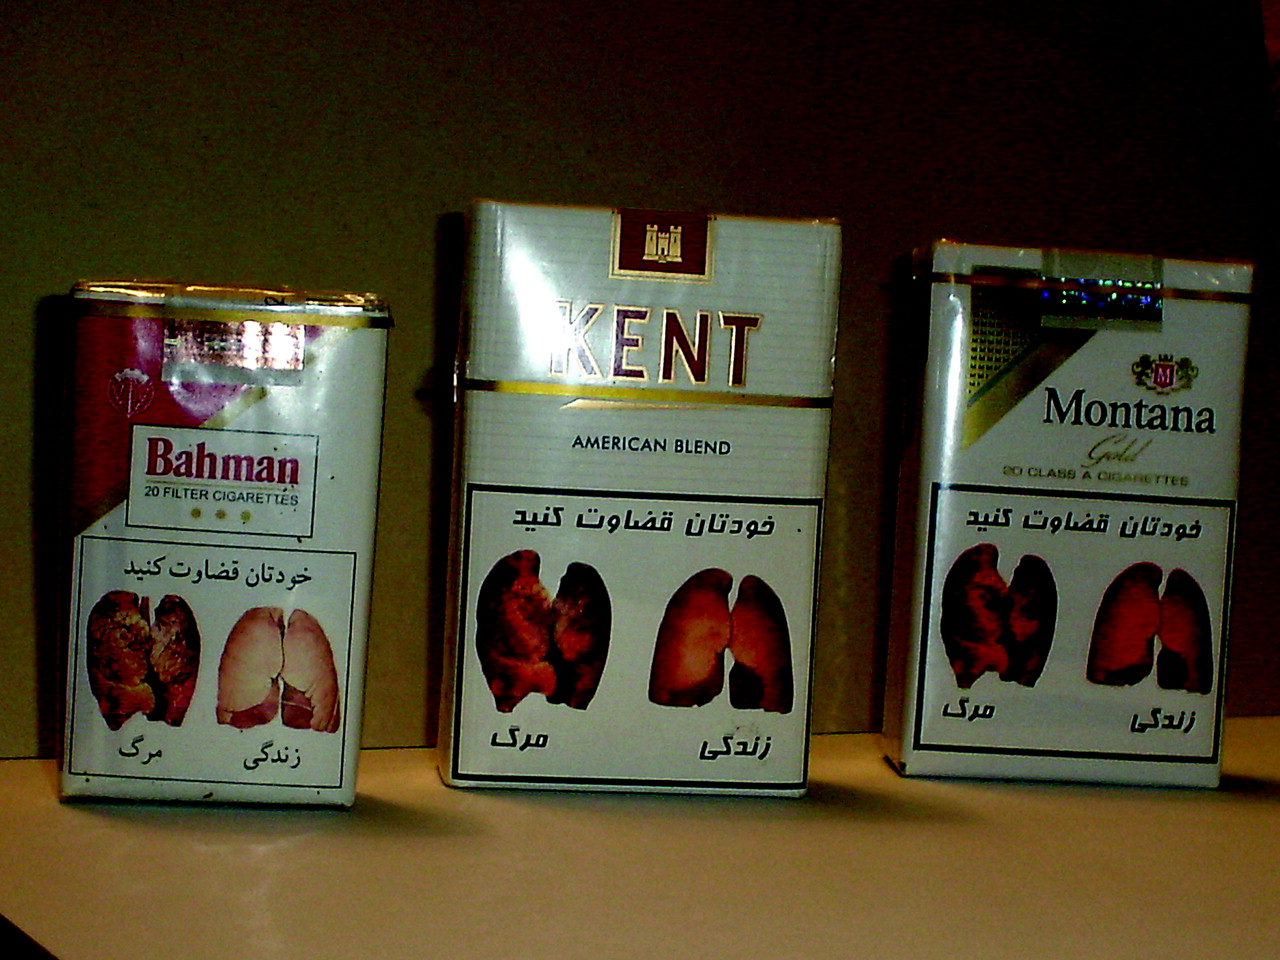 Foreign literature about cigarette smoking